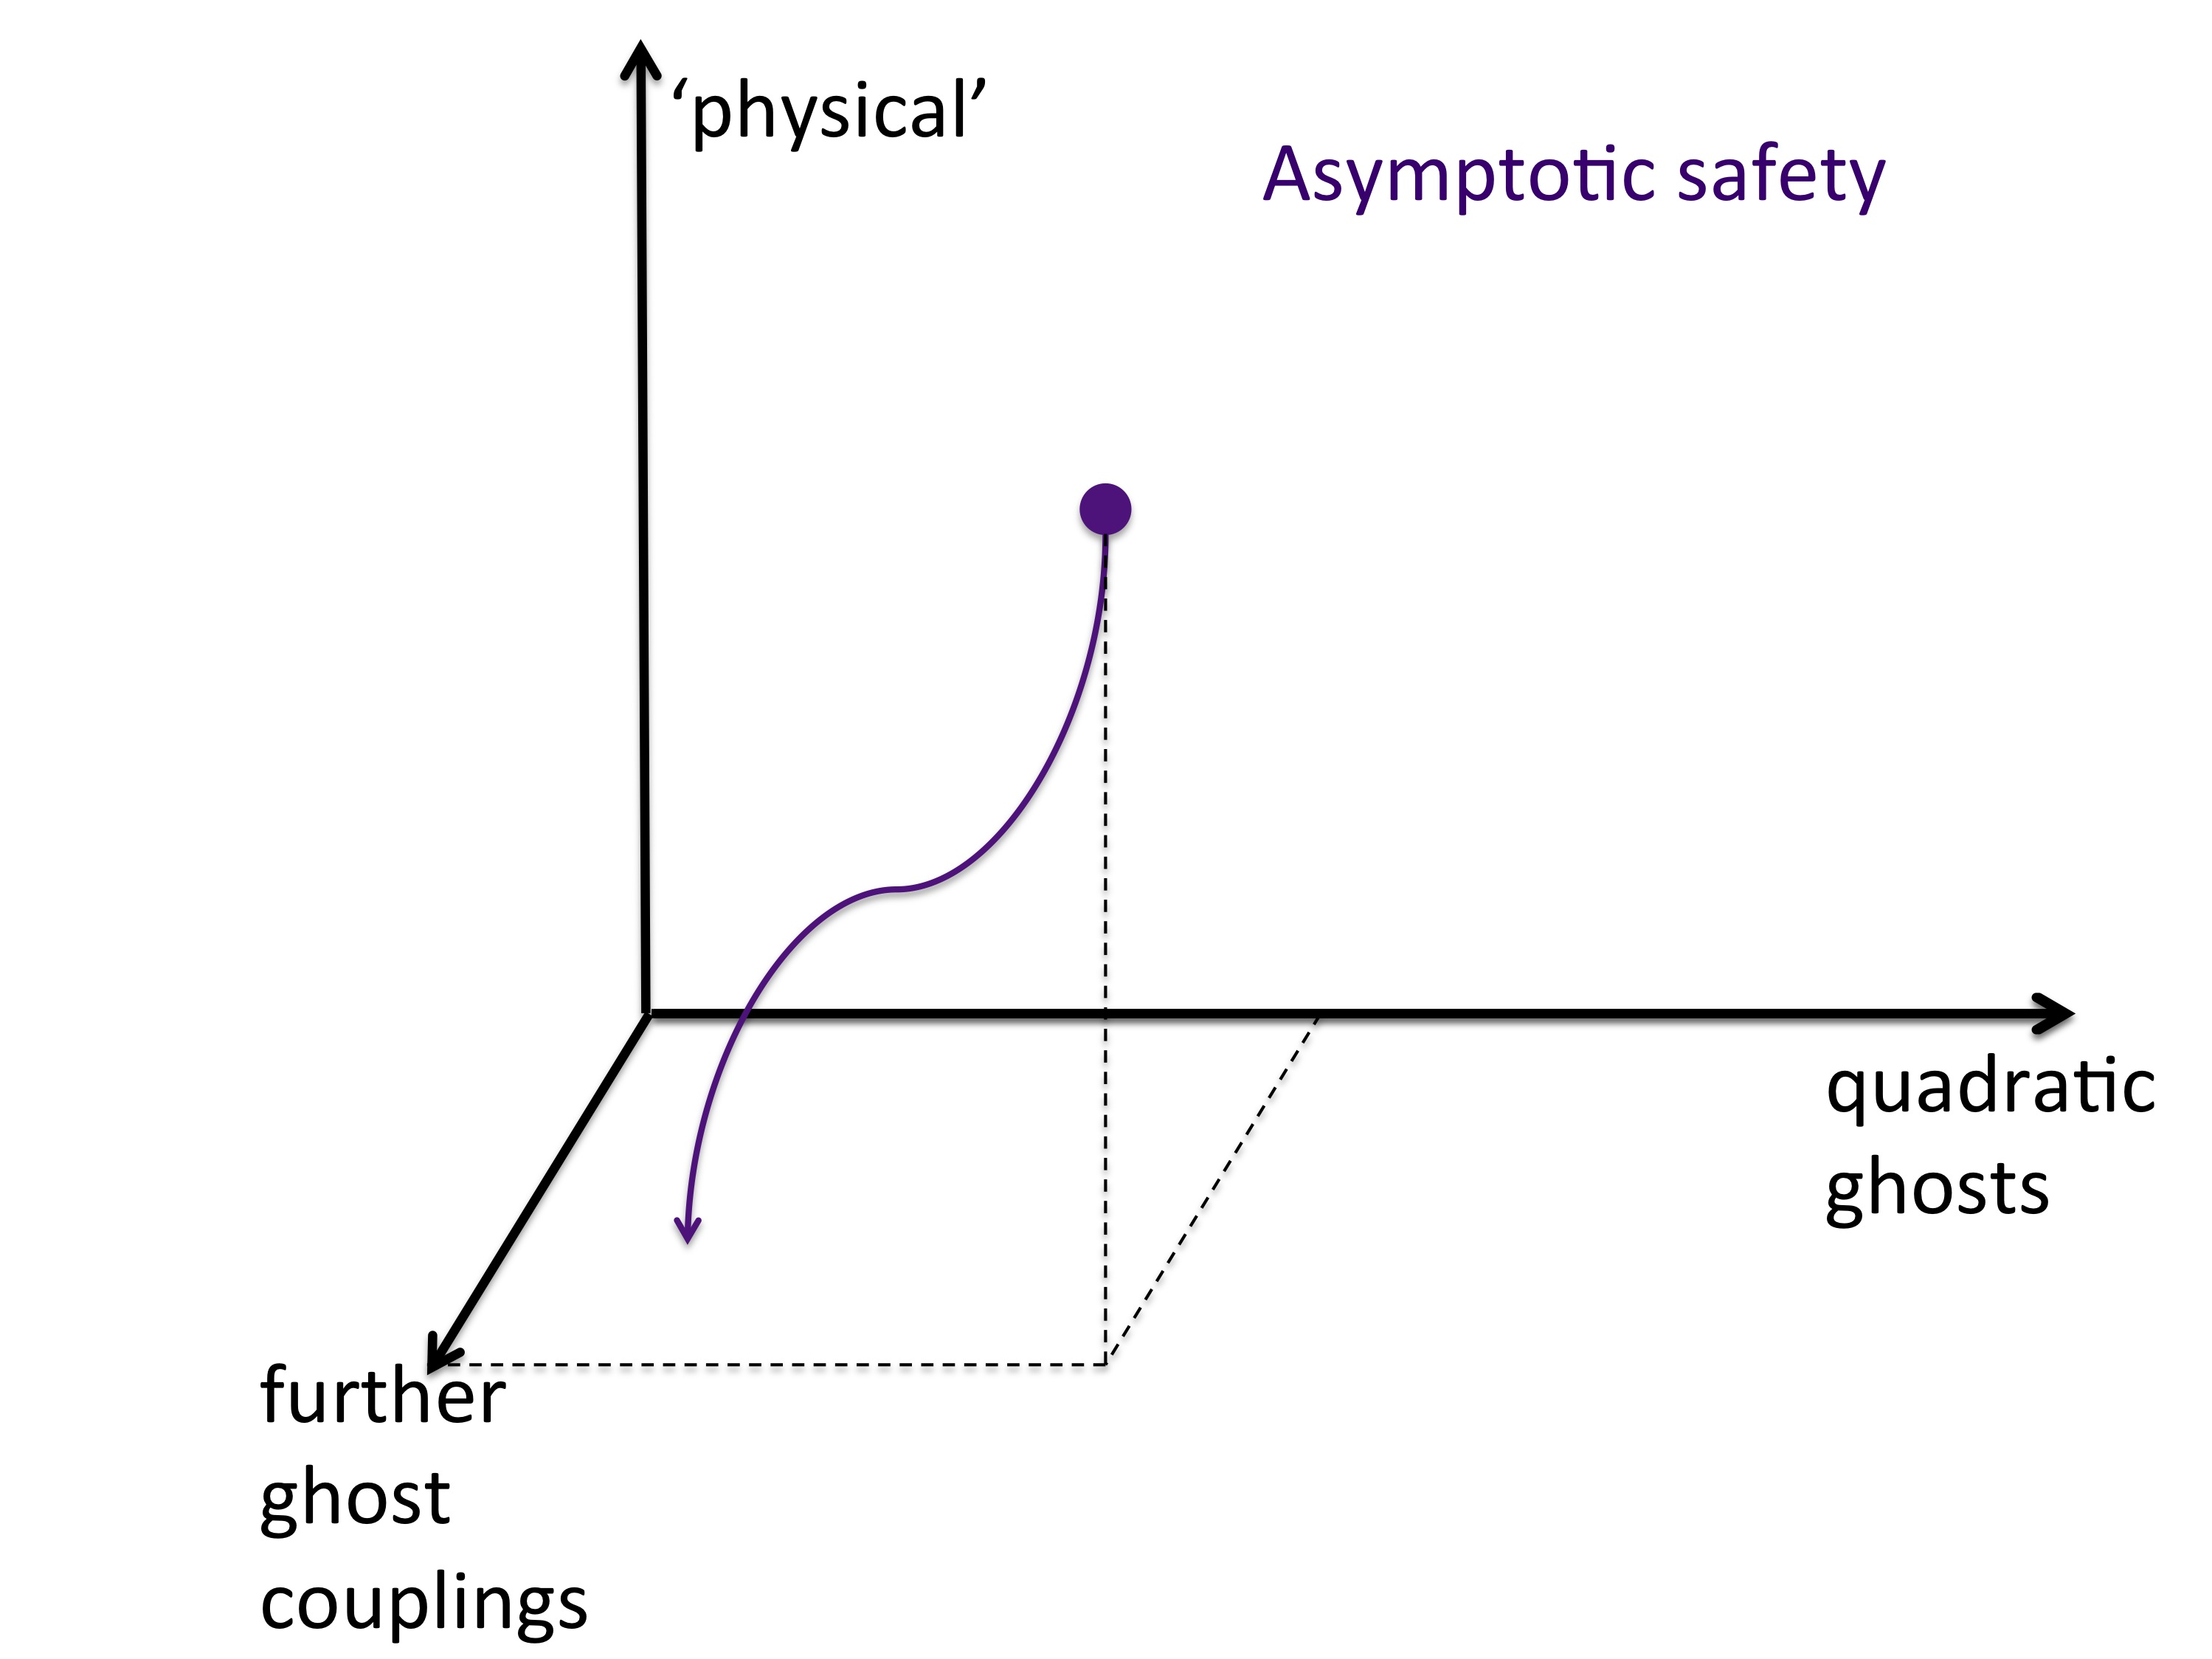 We illustrate the RG flow in theory space in the case of asymptotic freedom (left panel) and asymptotic safety (right panel).